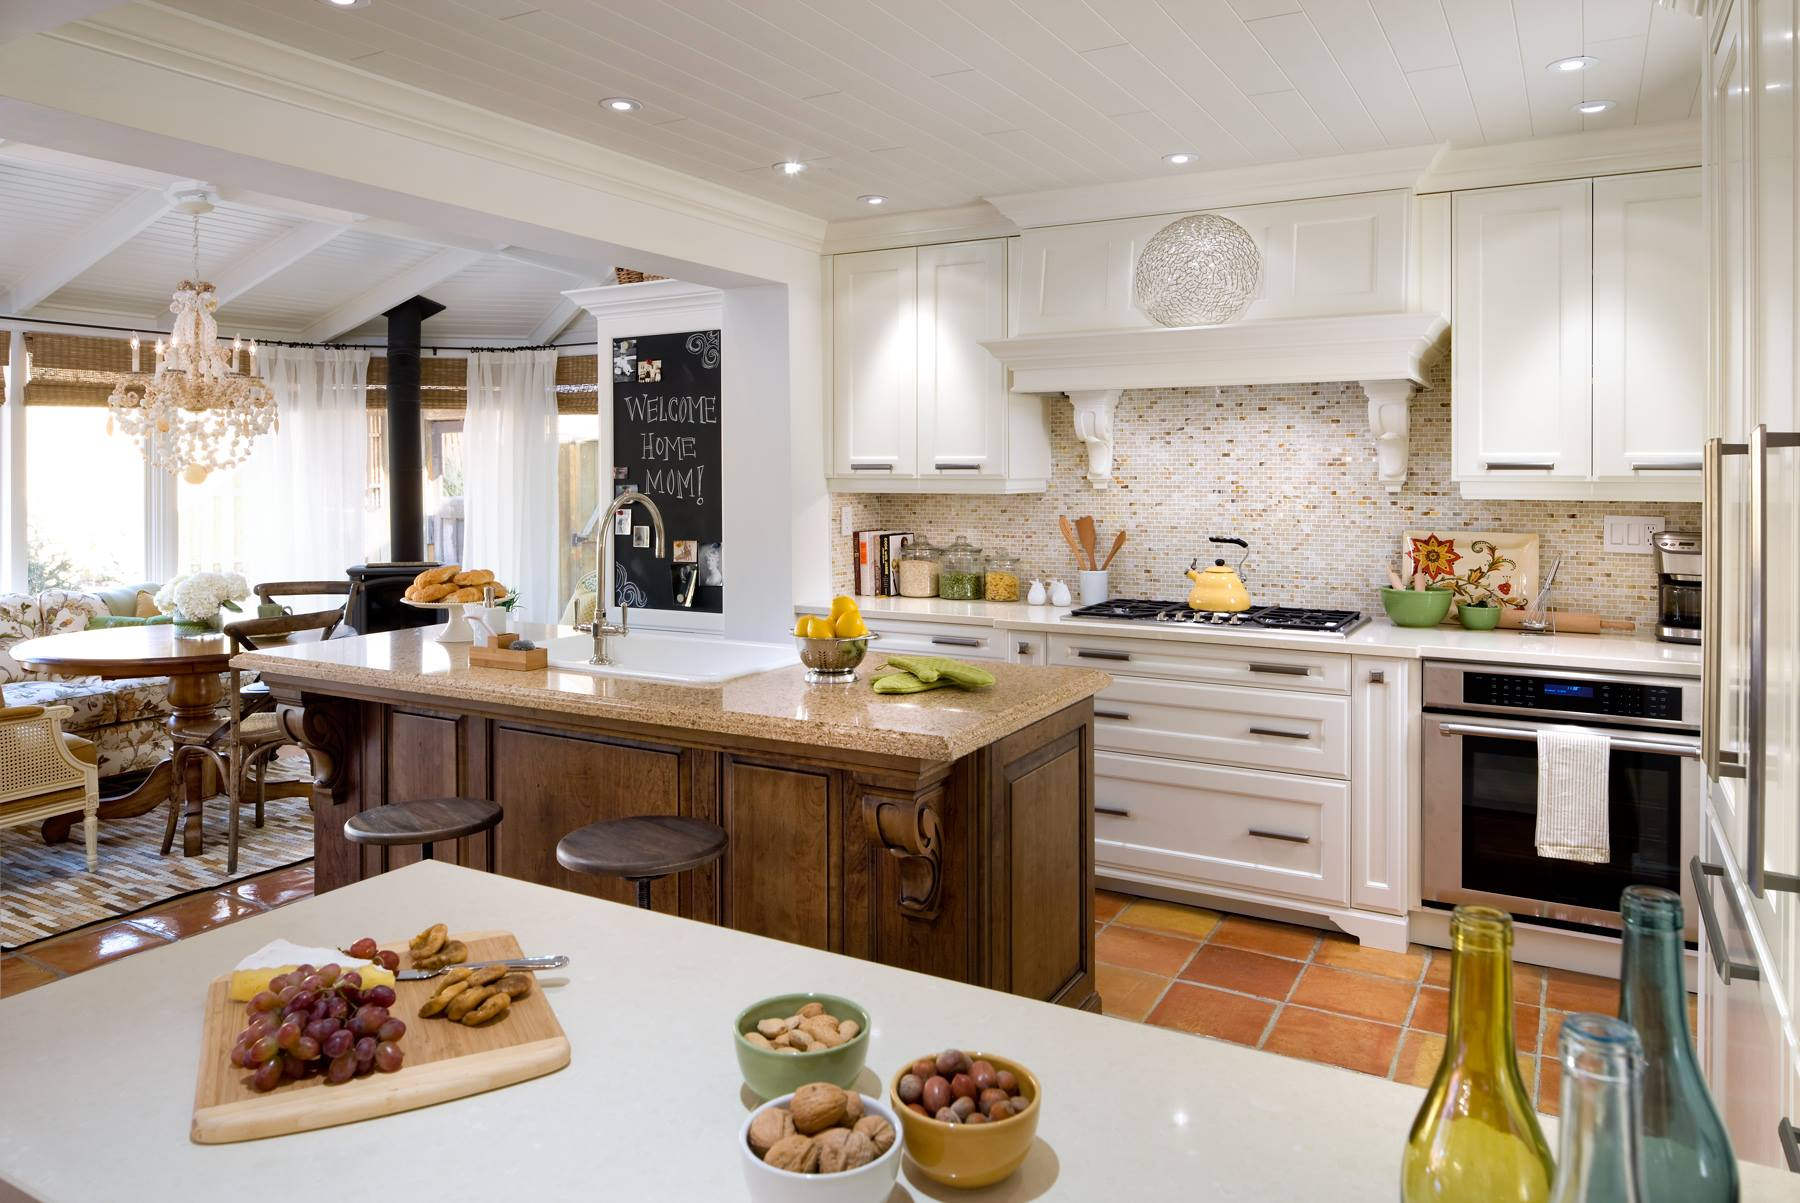 candice olson kitchens pictures photo - 4